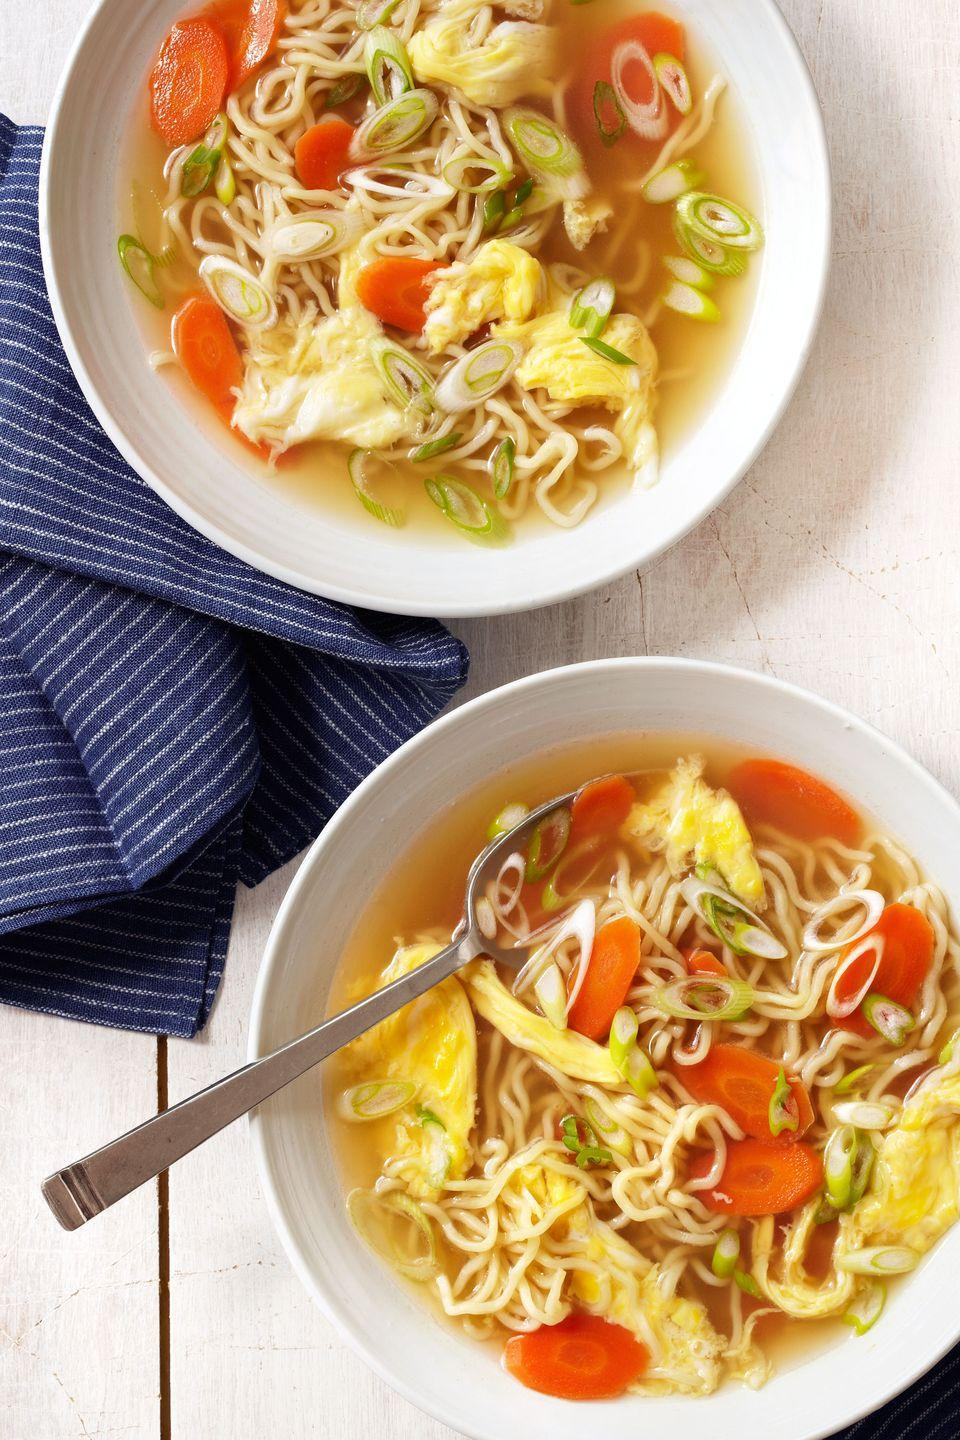 """<p>Use quick-cooking ramen and store-bought chicken broth to get this hearty rendition of the Chinese-restaurant classic on the table in a jiffy. Fortune cookies optional.</p><p><strong><a href=""""https://www.countryliving.com/food-drinks/recipes/a4891/egg-drop-noodle-soup-recipe-clv0214/"""" rel=""""nofollow noopener"""" target=""""_blank"""" data-ylk=""""slk:Get the recipe"""" class=""""link rapid-noclick-resp"""">Get the recipe</a>.</strong></p>"""